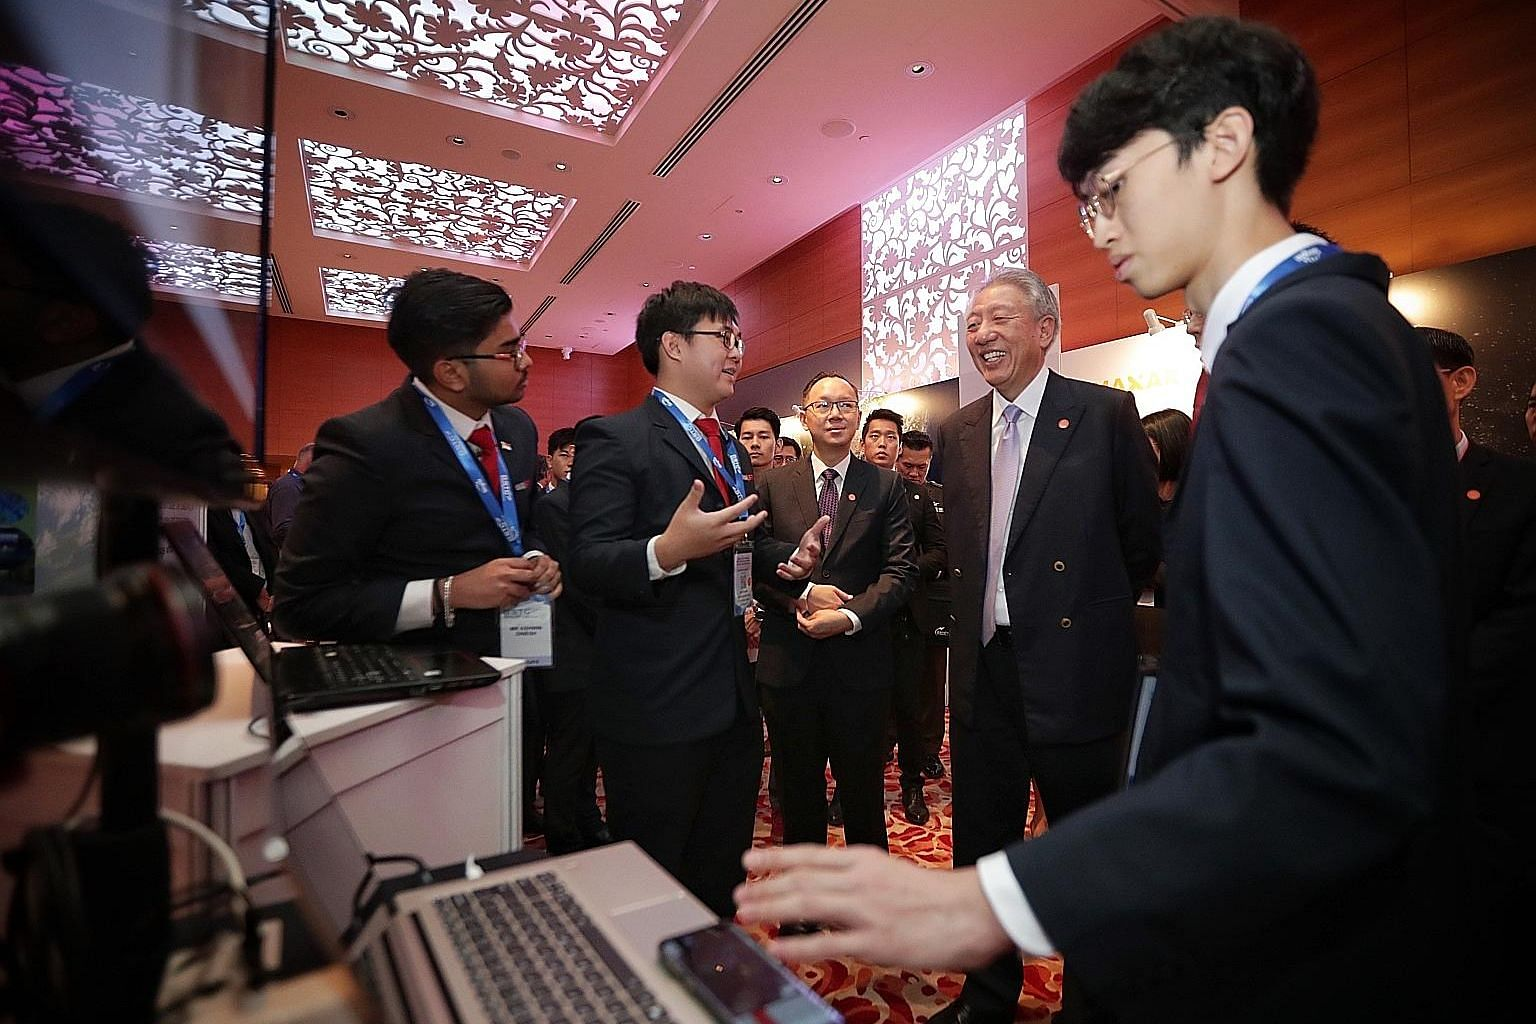 Senior Minister and Coordinating Minister for National Security Teo Chee Hean with Singapore Polytechnic students (from left) Ashwin Dinesh, Davis Zheng and Tristan Voon at the 12th Global Space and Technology Convention in Grand Hyatt Singapore yest